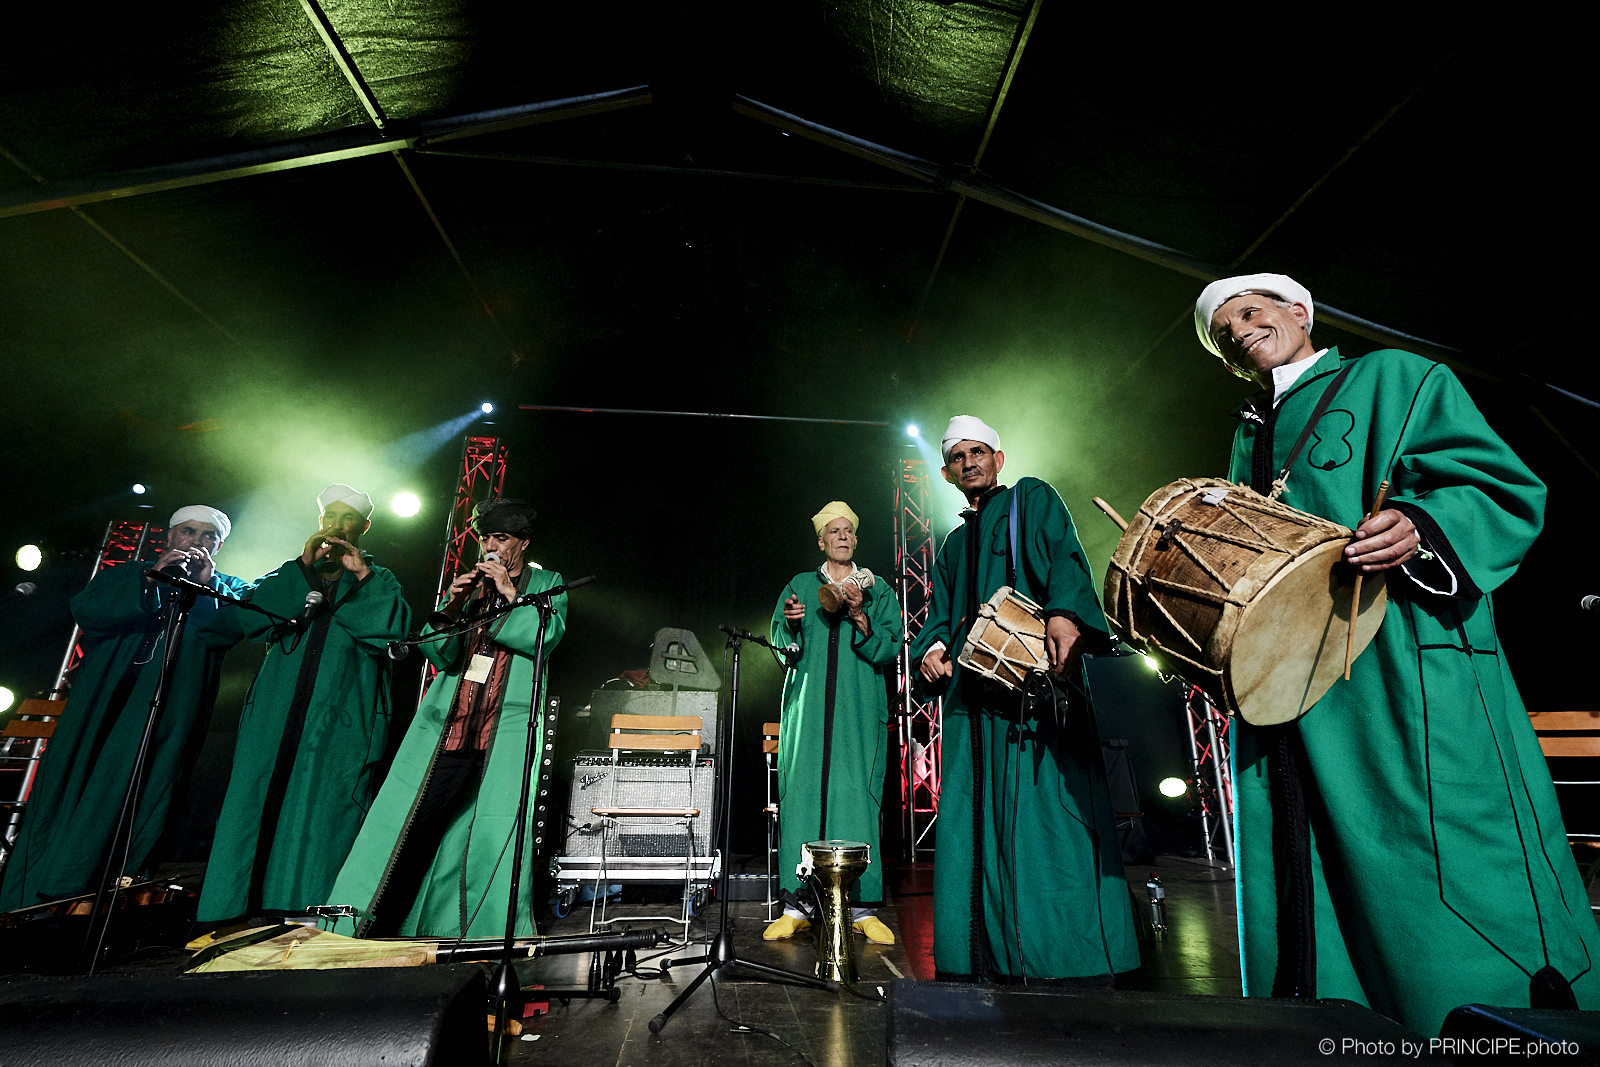 The Mastermusicans of Jajouka Led by Bachir Attar @ Bad Bonn